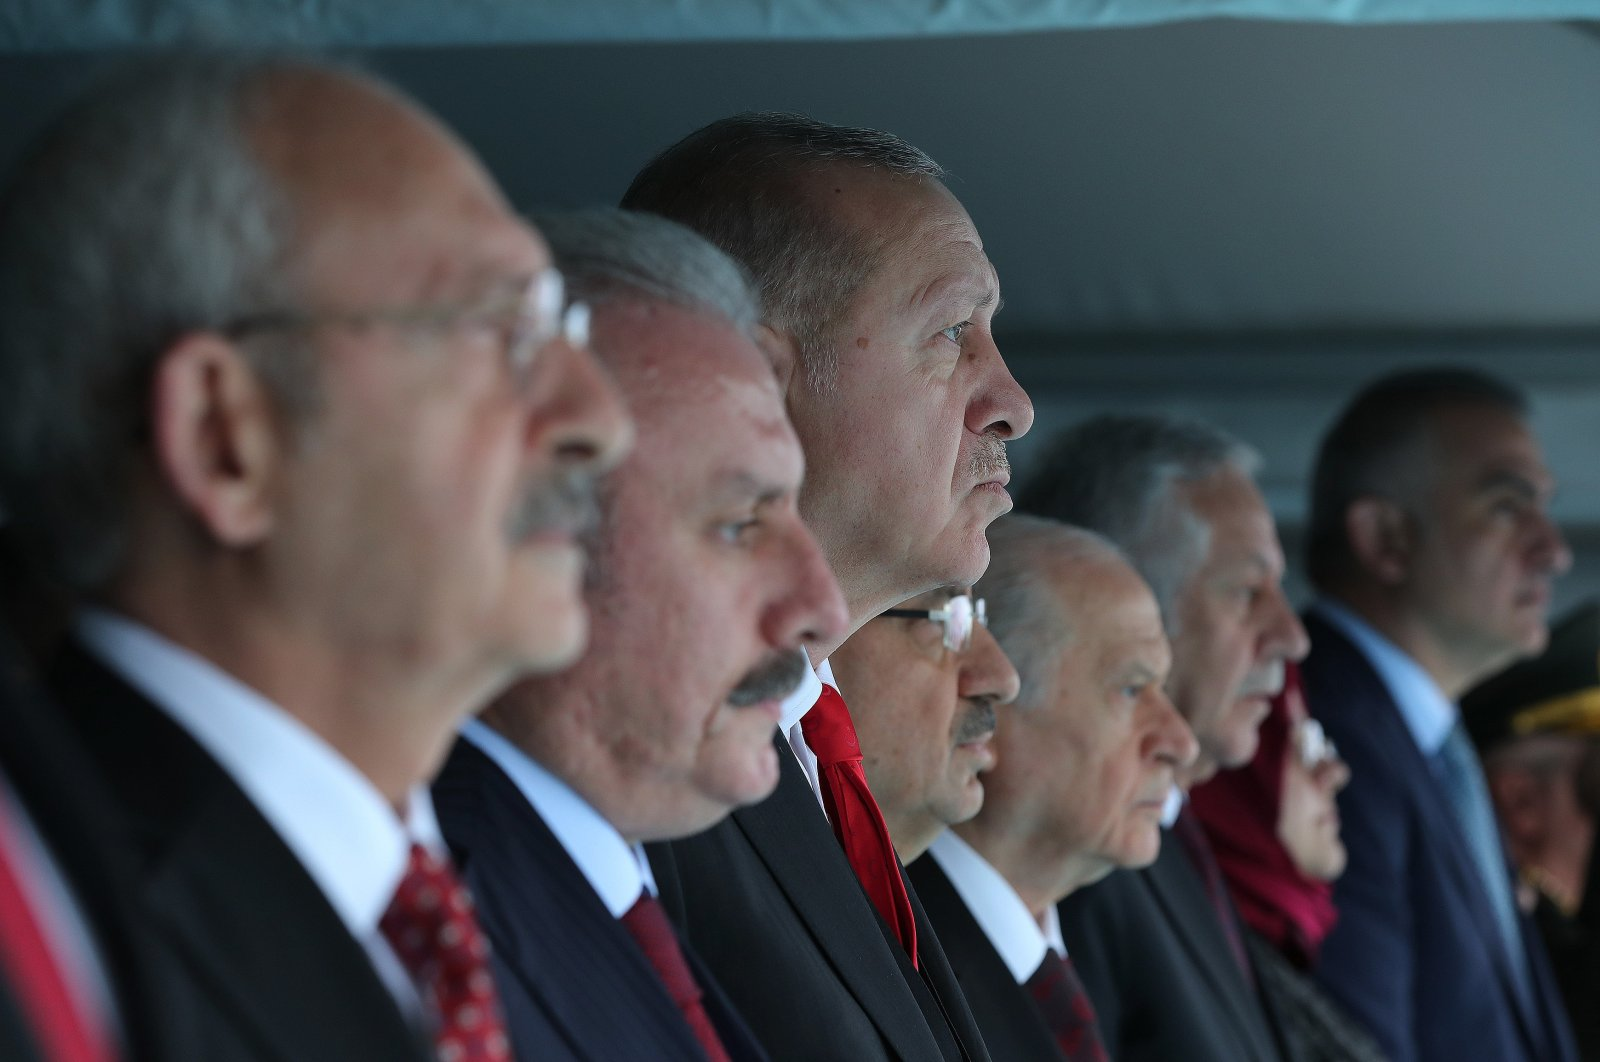 From left to right, CHP Chairperson Kemal Kılıçdaroğlu, Parliament Speaker Mustafa Şentop, President Recep Tayyip Erdoğan, Vice President Fuat Oktay and MHP Chairperson Devlet Bahçeli attend May 19 Youth and Sports Day celebrations in the northern province of Samsun, Turkey, May 19, 2019. (Sabah File Photo)